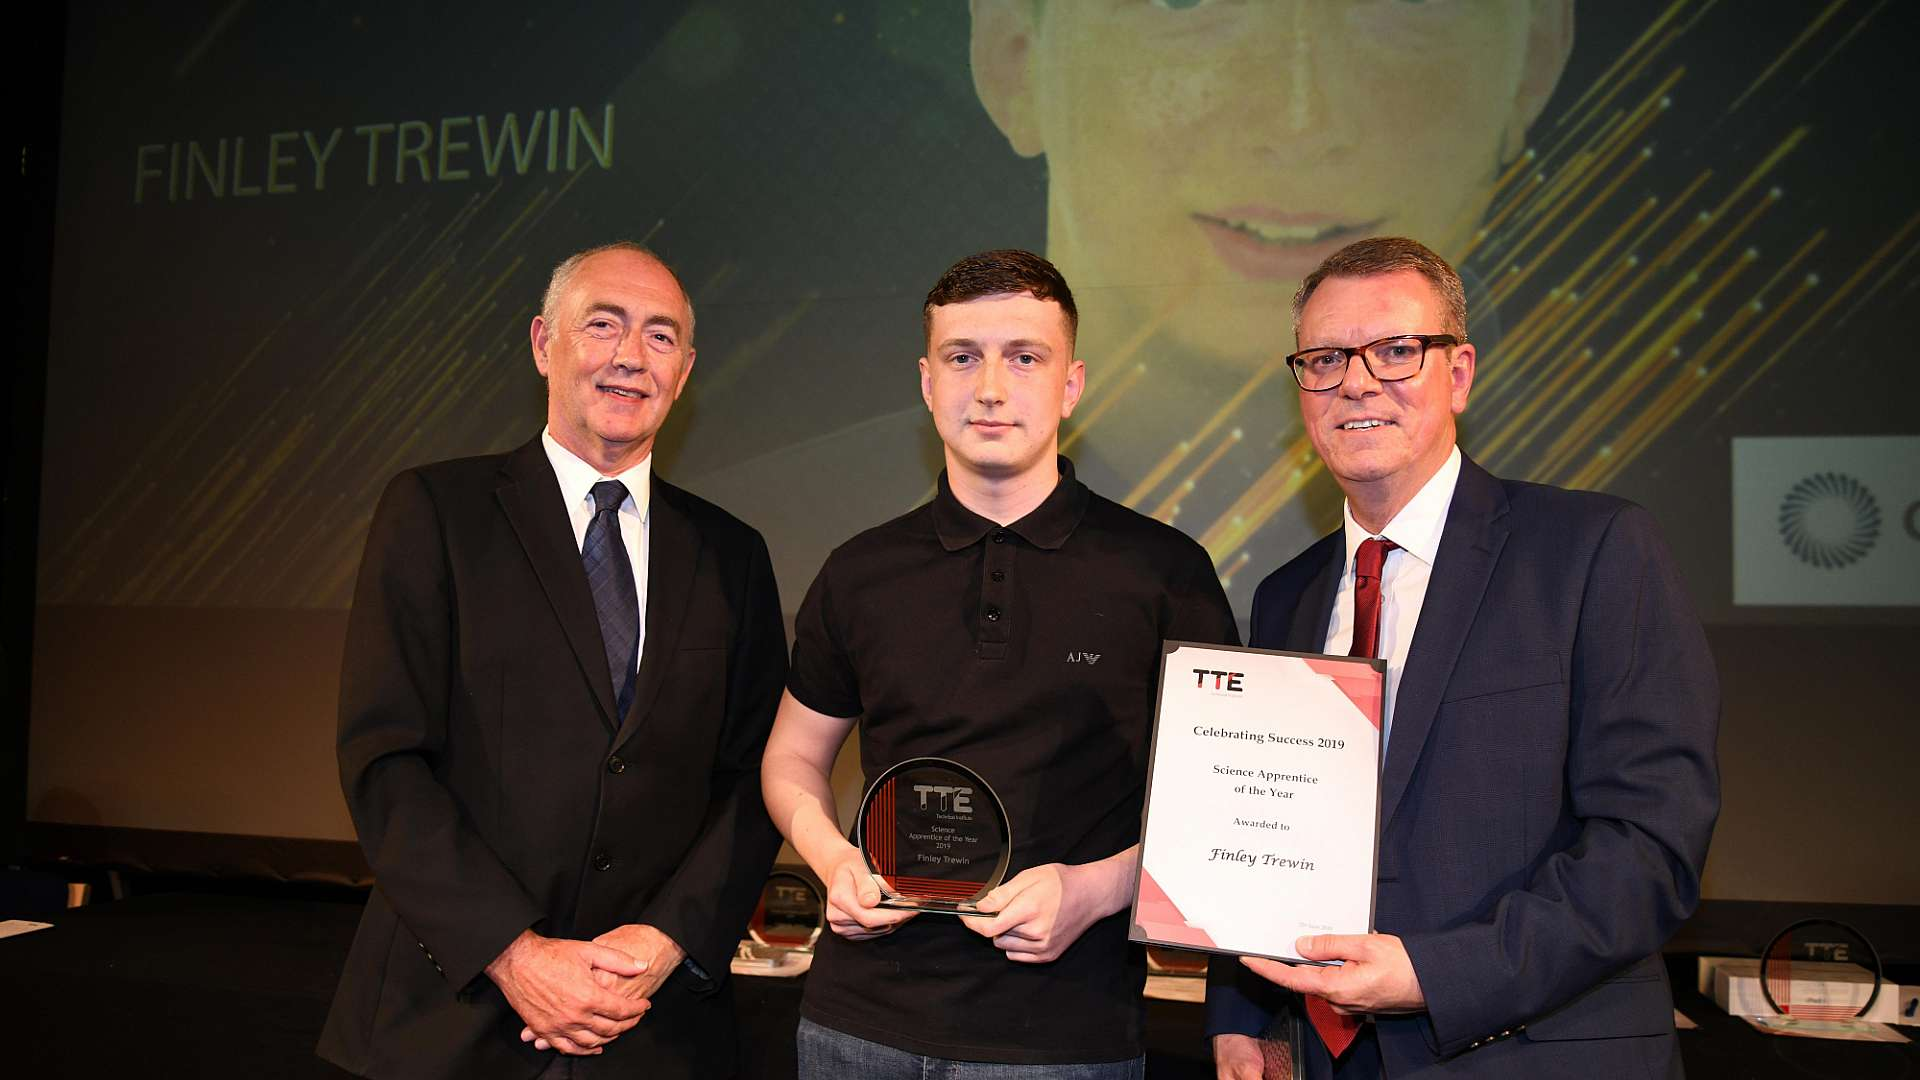 A photo of CPI apprentice Finley Trewin being presented with his award